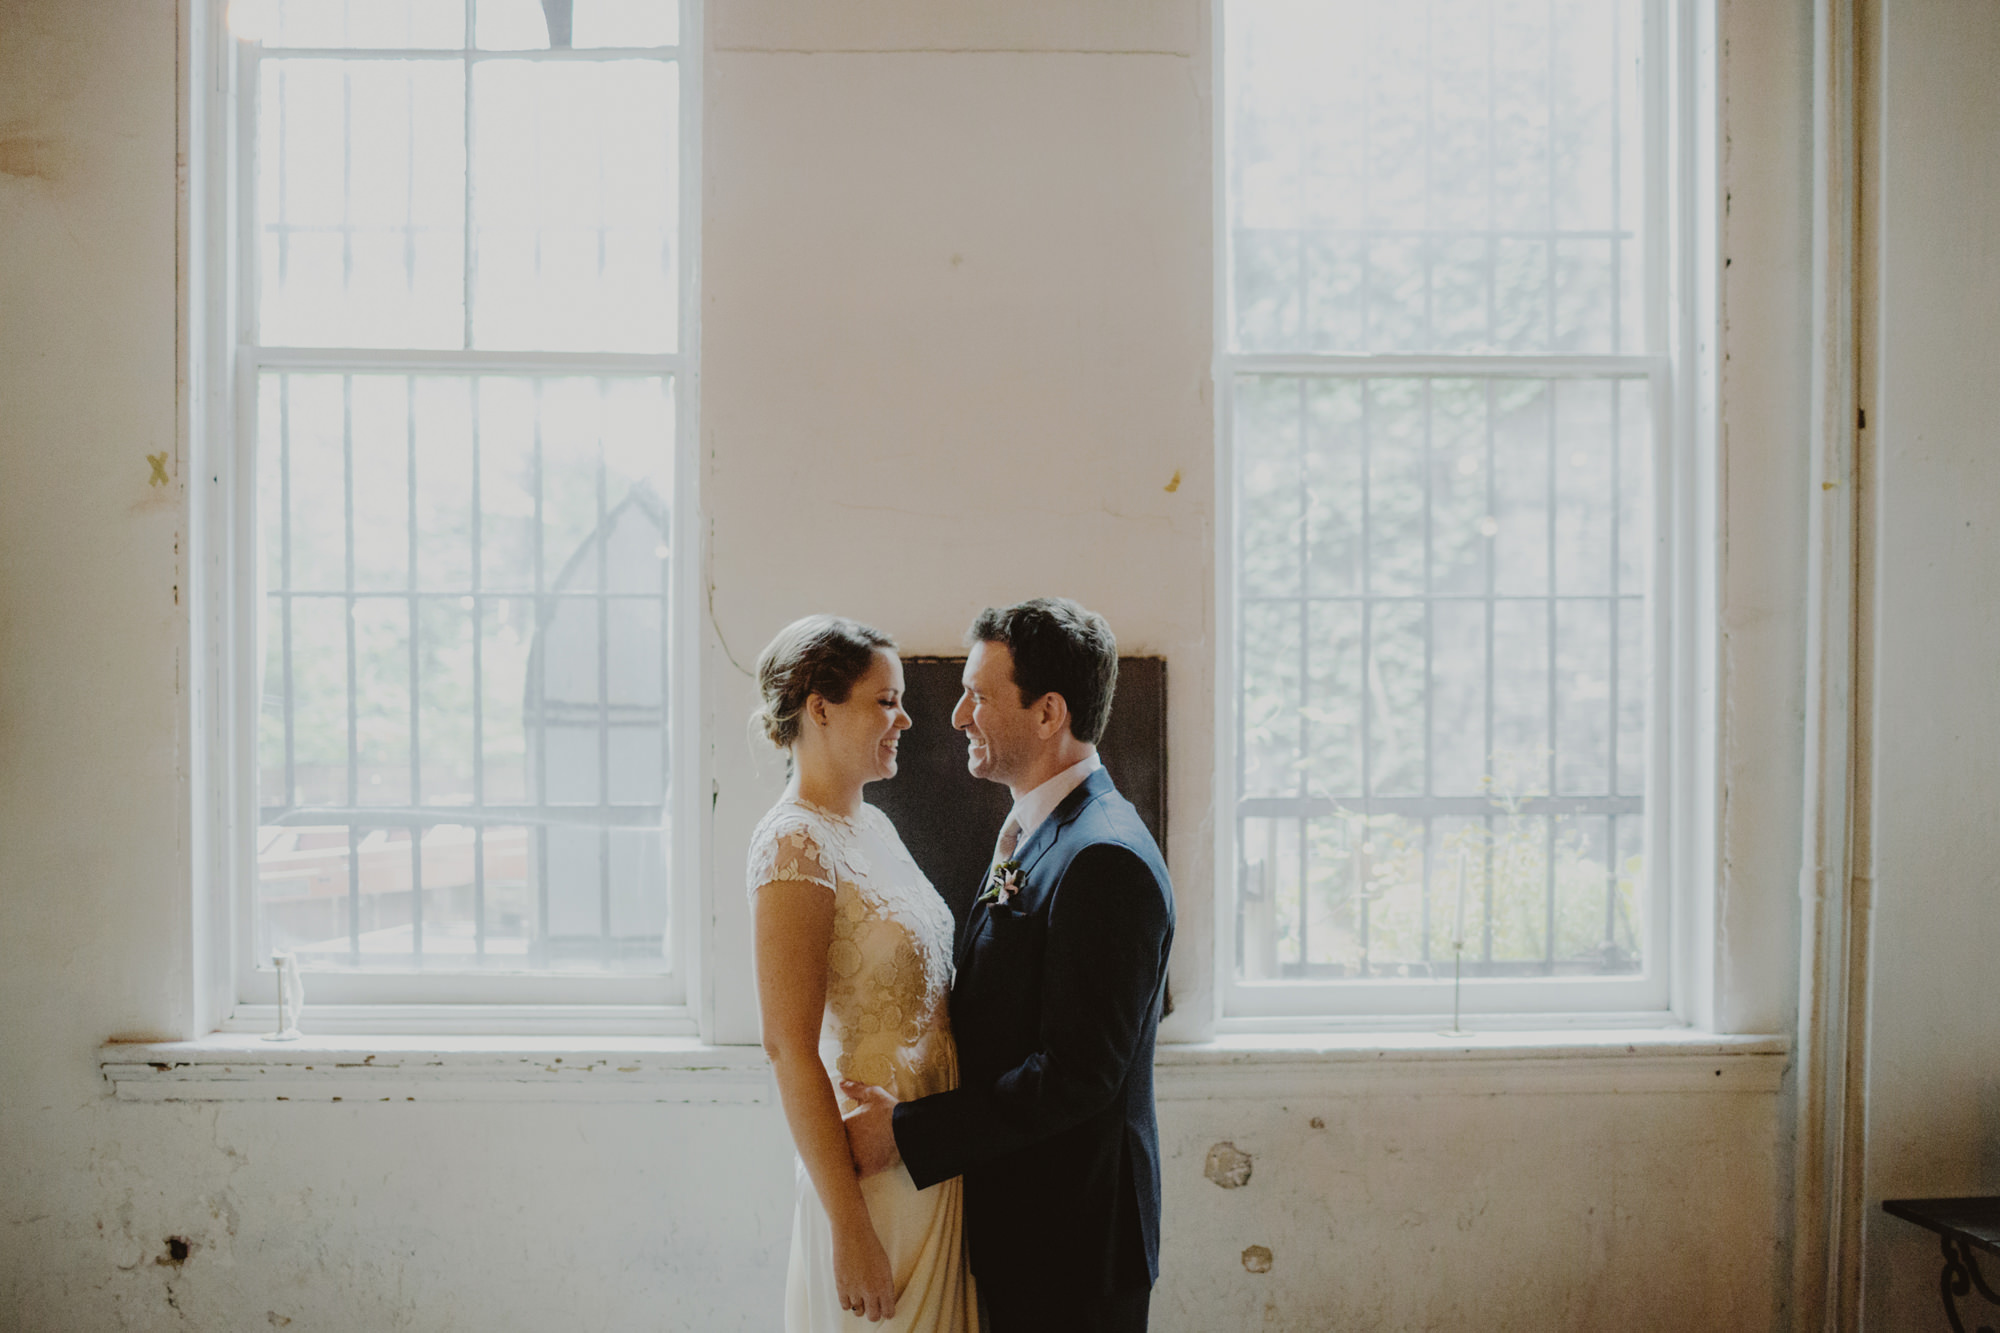 brooklyn_wedding_flatbushfarm_sammblake_009.jpg